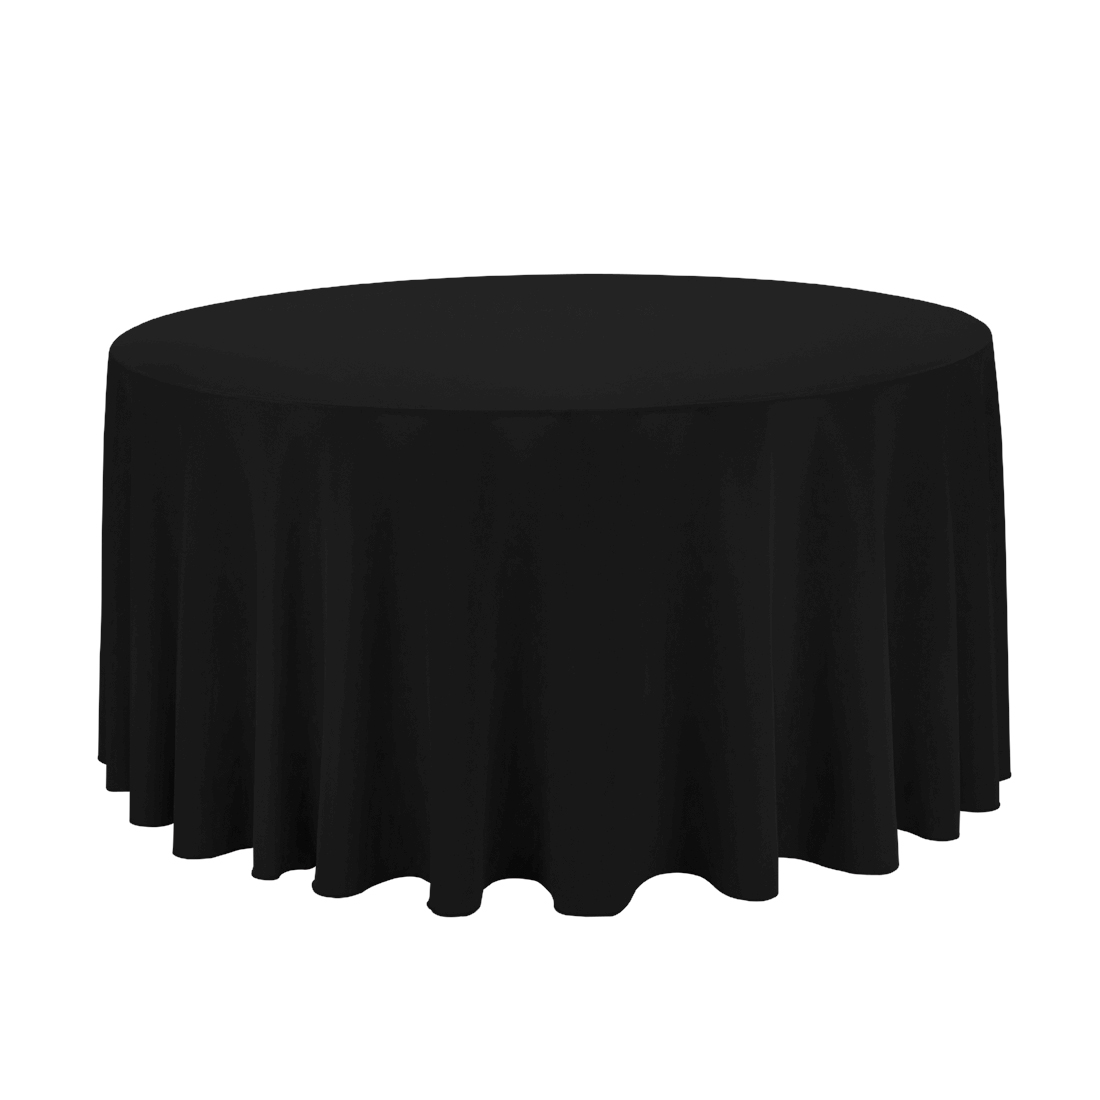 Round Table With Tablecloth.Black Table Cloth 108 Diameter